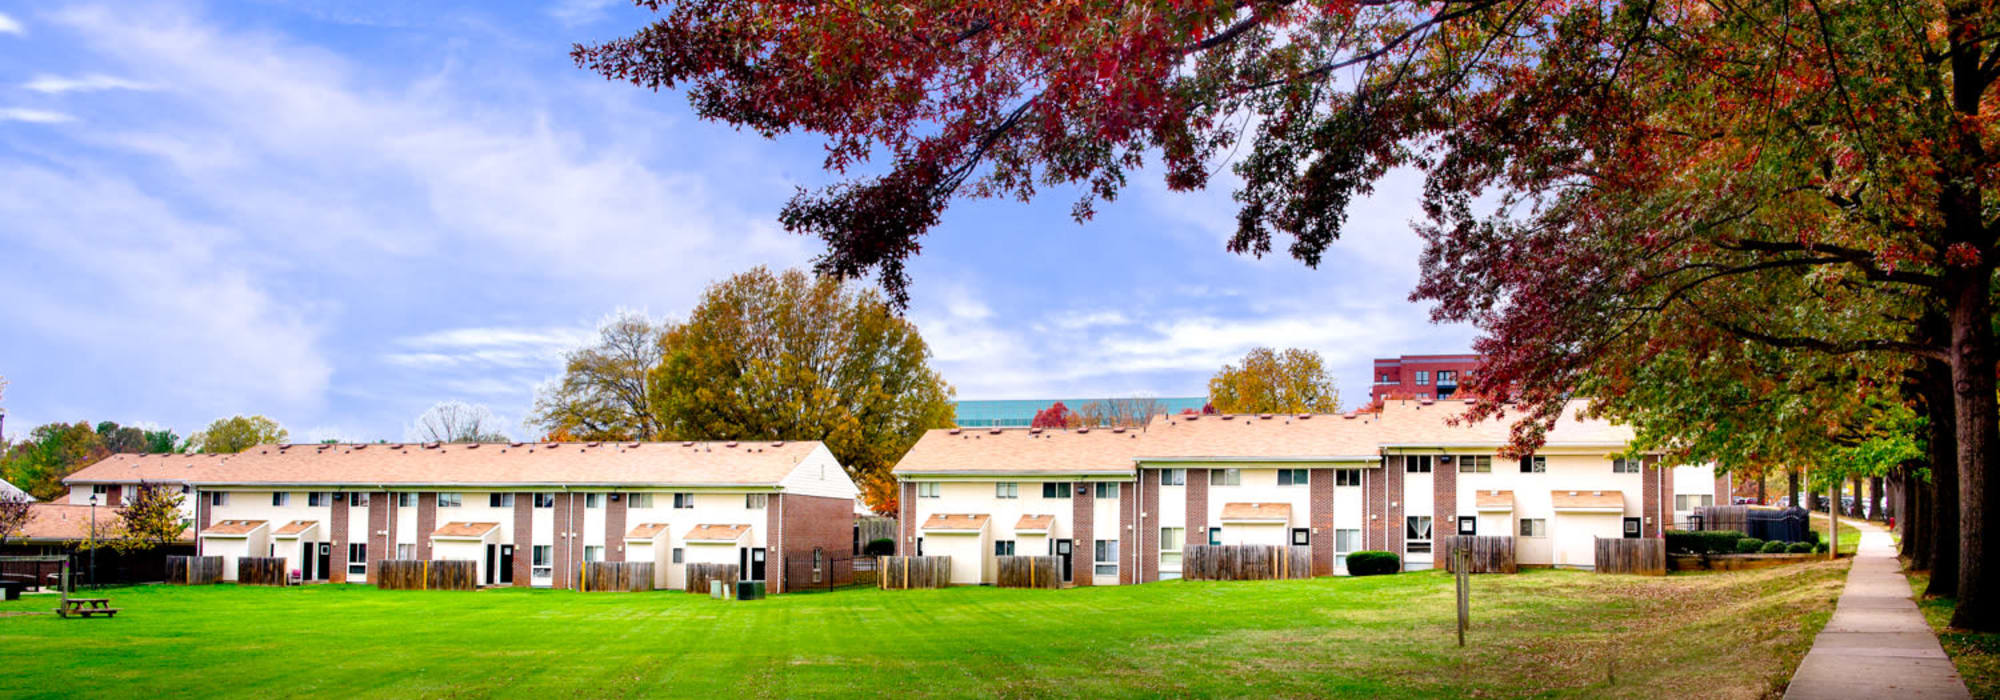 Charlottesville Va Apartments For Rent Friendship Court Apartments